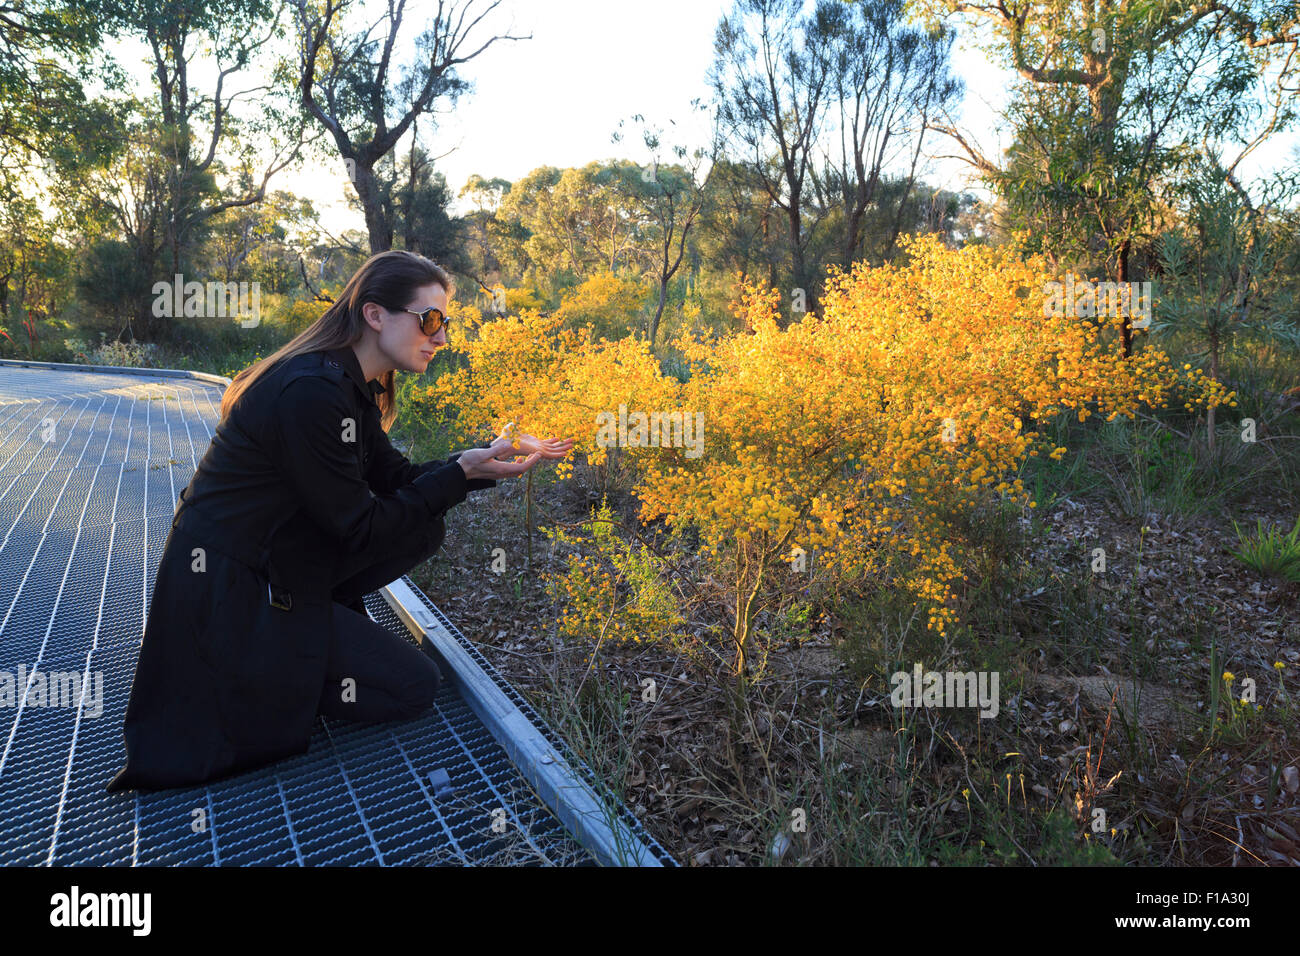 A woman smelling the flowers on a wattle bush at Kings Park in  Perth, Western Australia - Stock Image